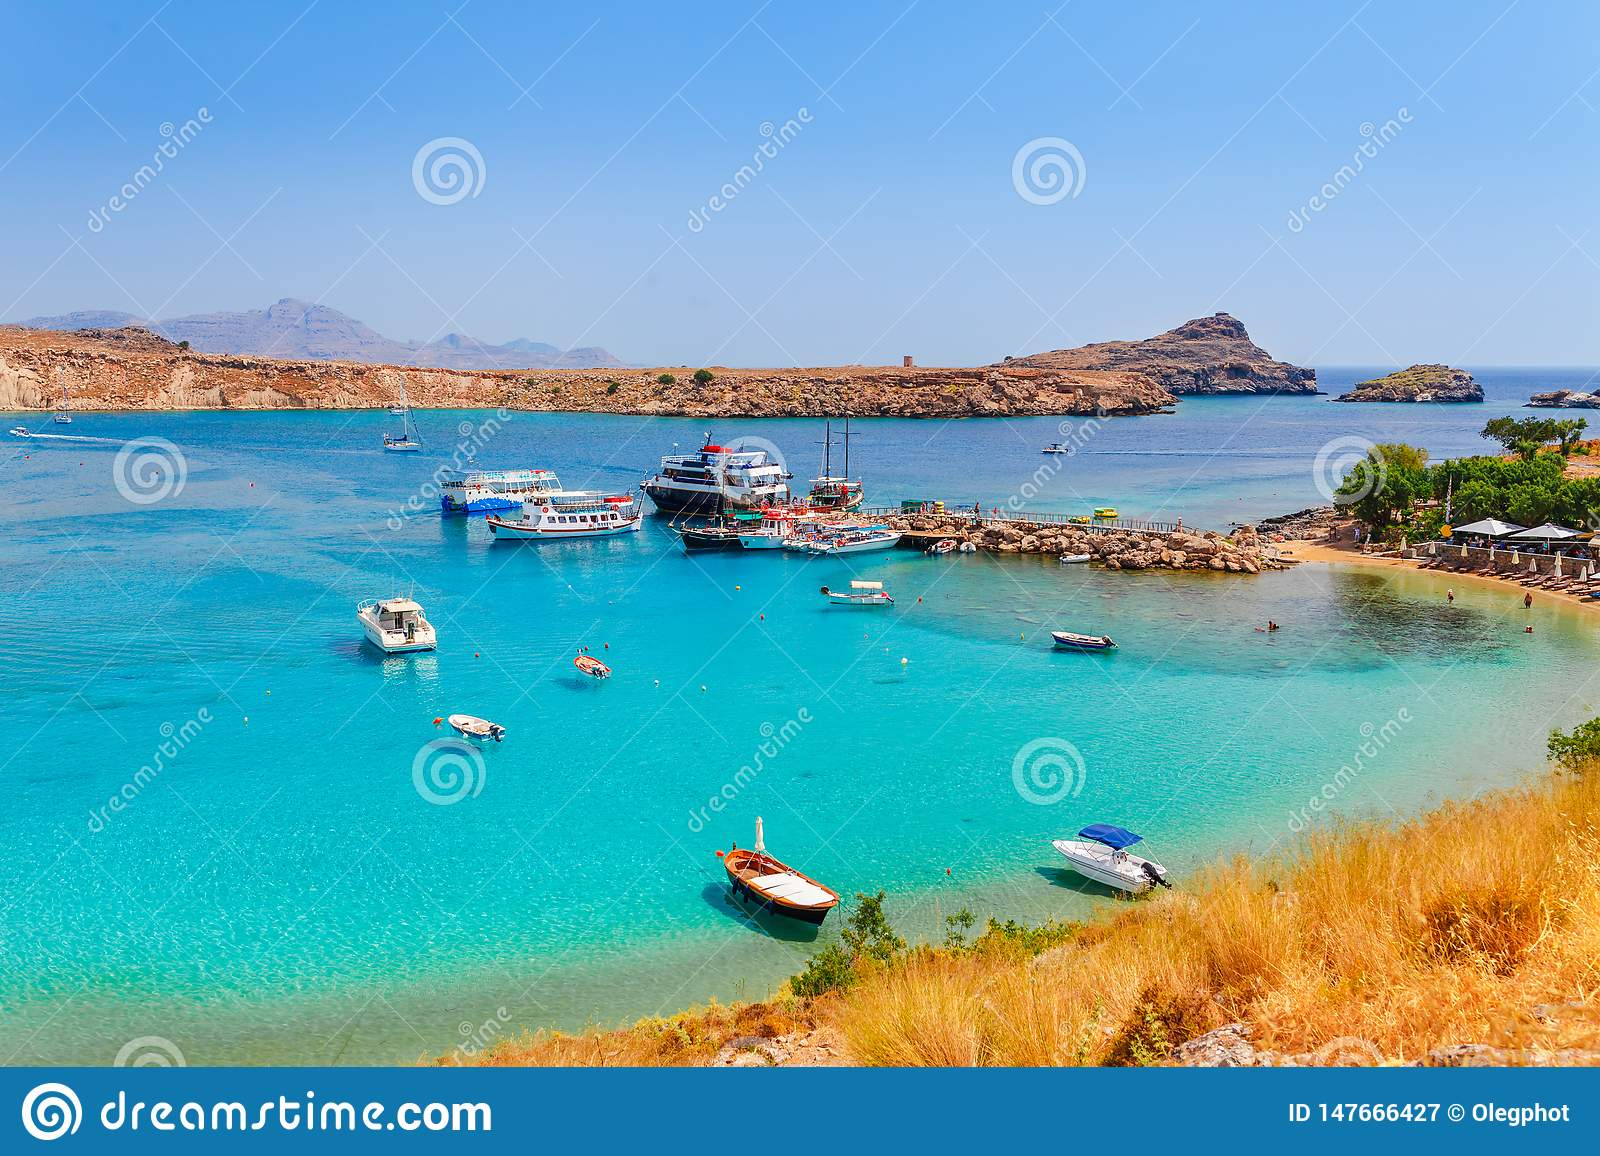 Sea skyview landscape photo Lindos bay and sea coast on Rhodes island, Dodecanese, Greece. Panorama with nice sand beach and clear